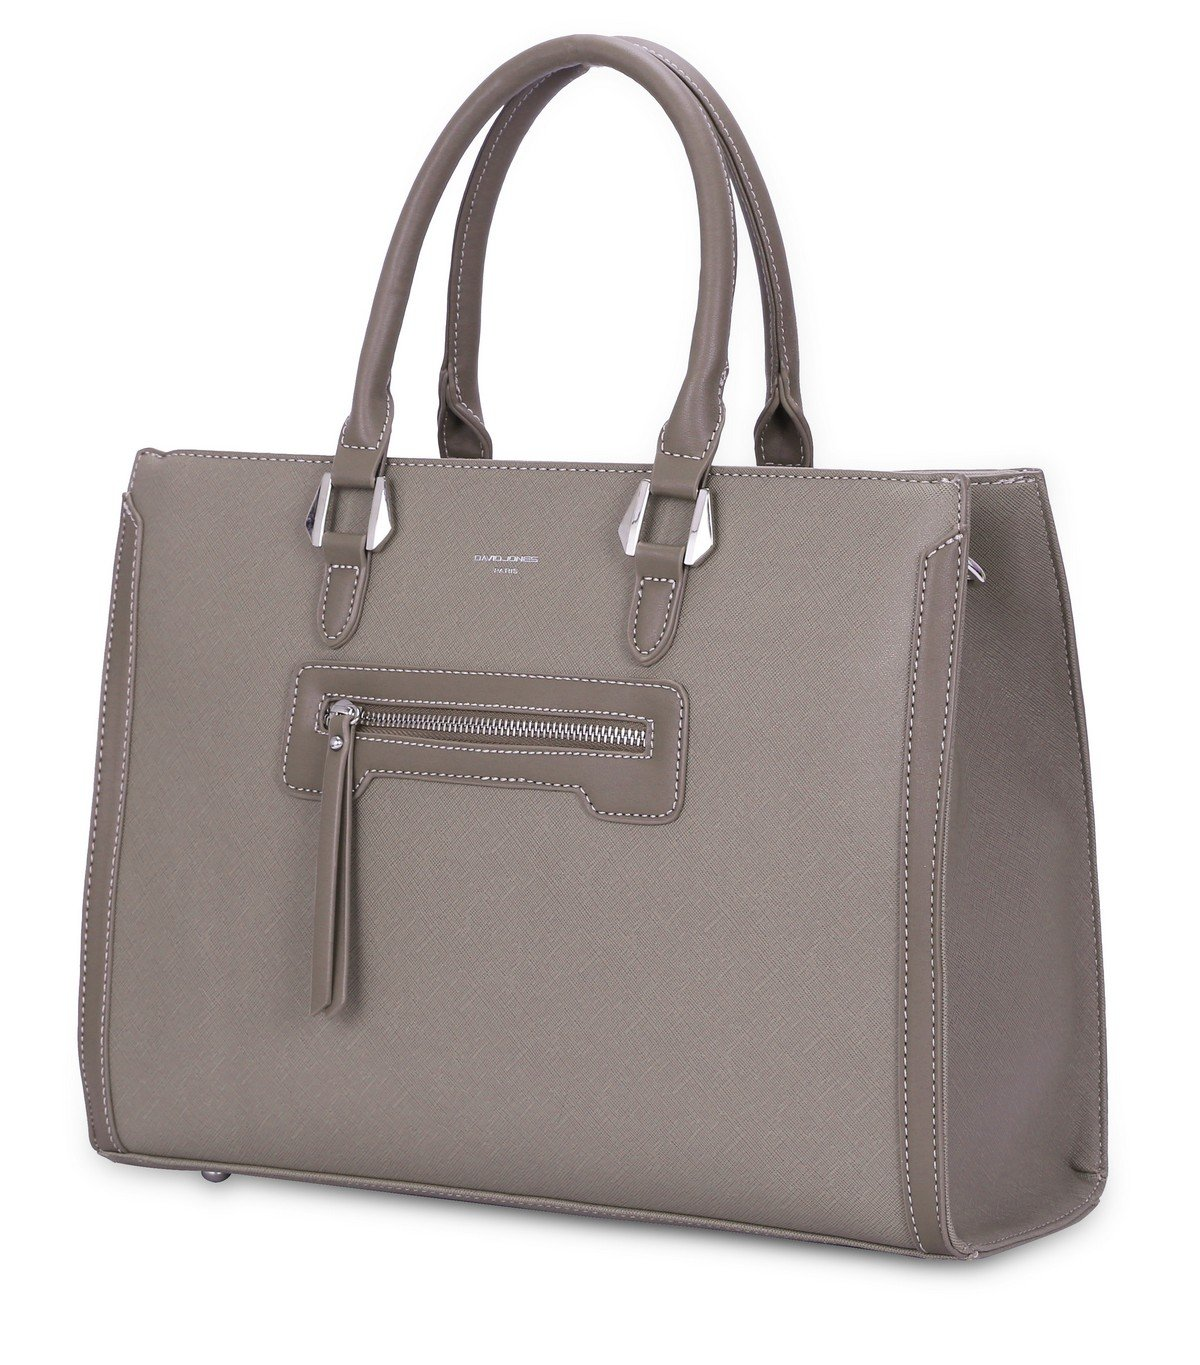 bfc9334d6e David Jones - Grand Sac à Main Femme - Cabas Fourre-Tout Cuir PU Rigide